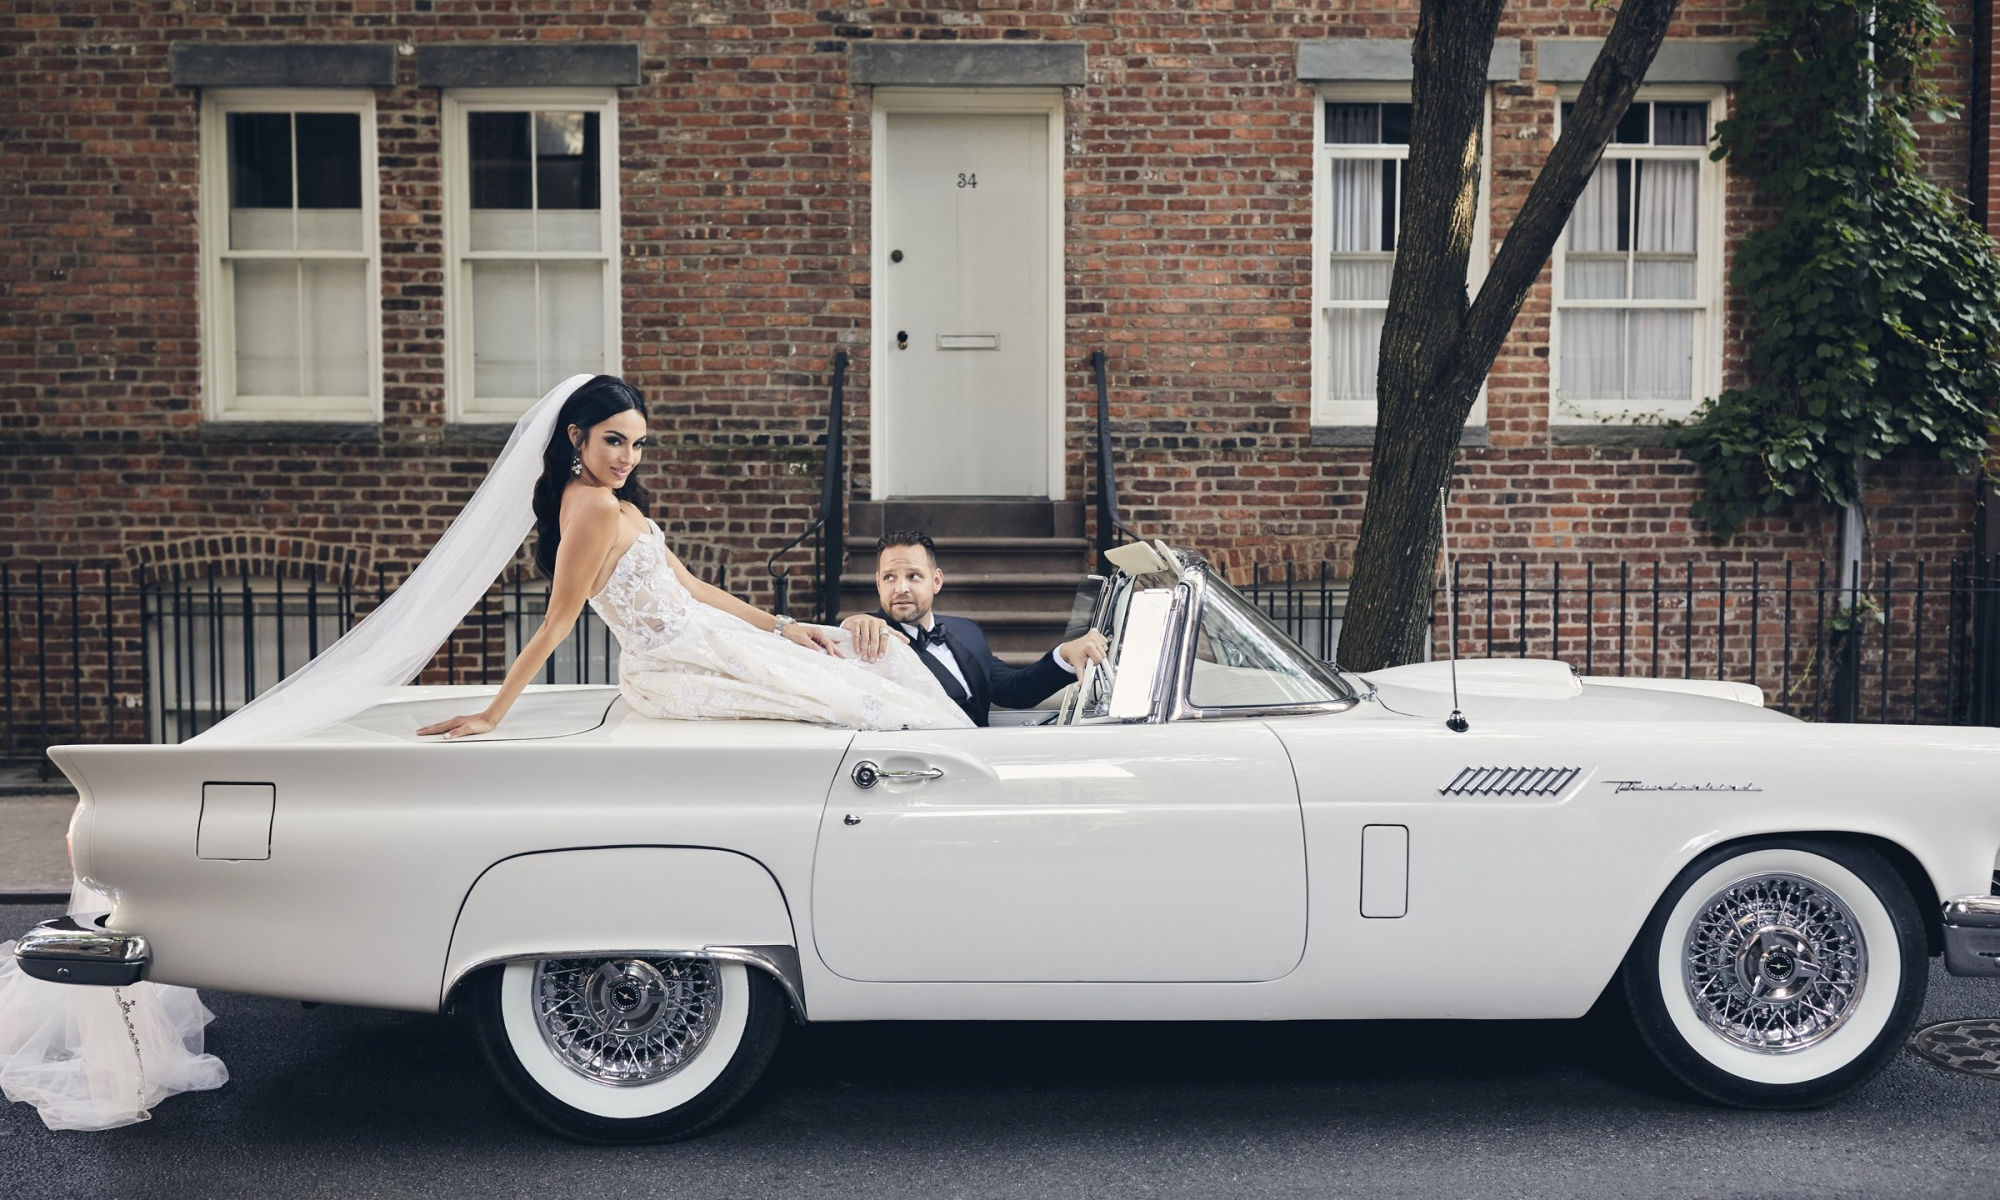 Christian Oth Studio International Wedding Photographers based in New York City